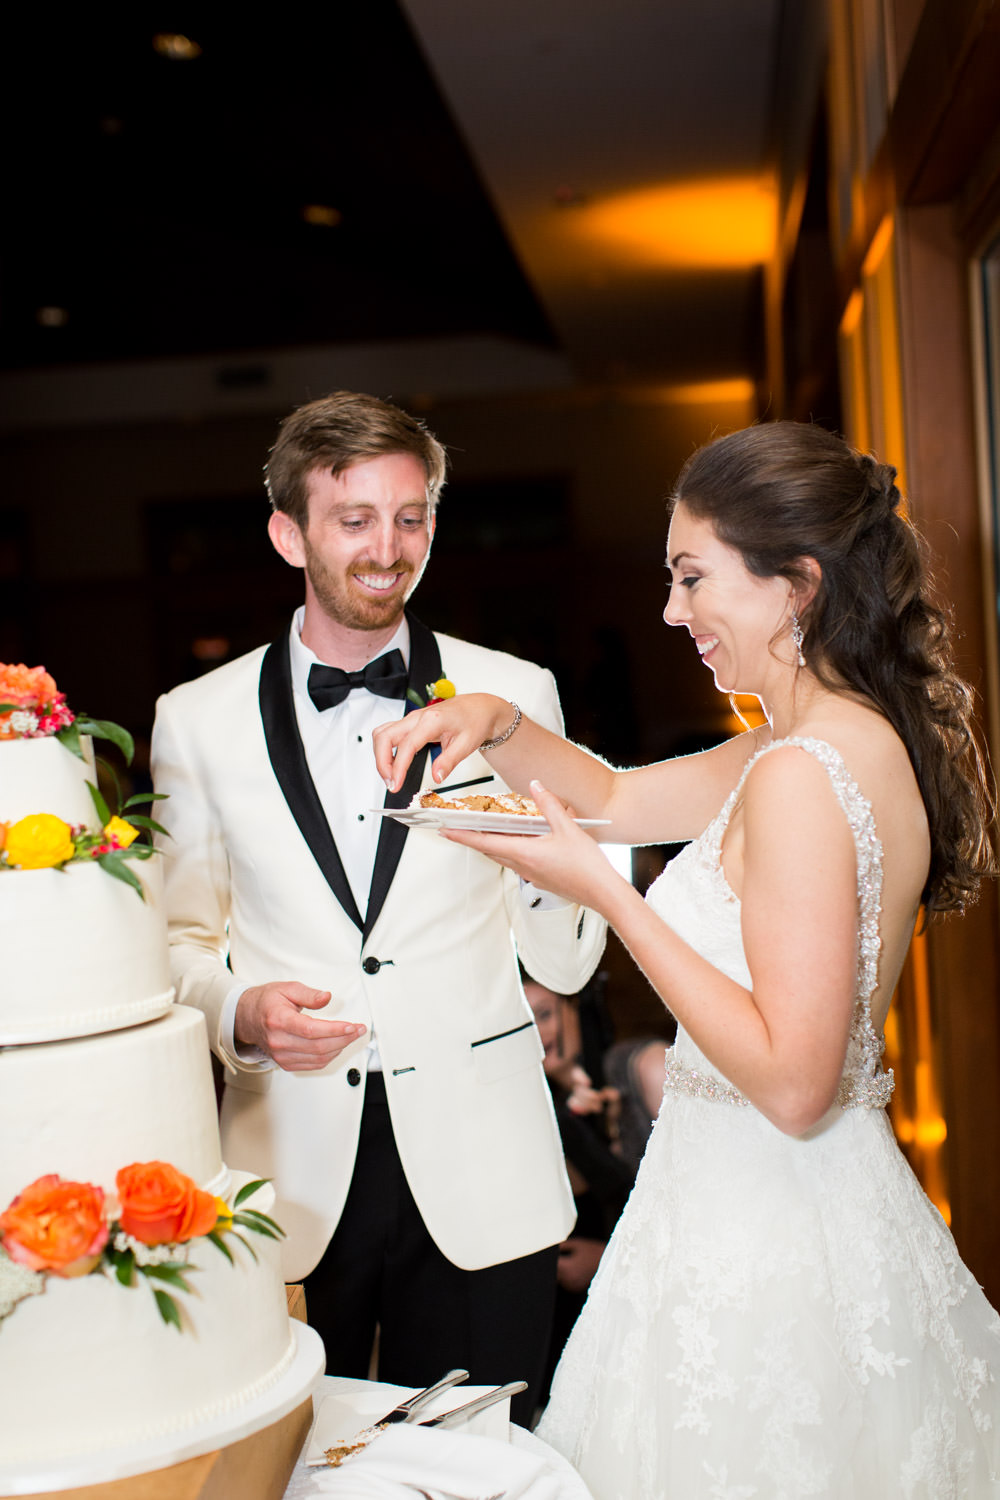 Bride and groom cake cutting at their wedding reception at the Coronado Community Center, Cavin Elizabeth Photography